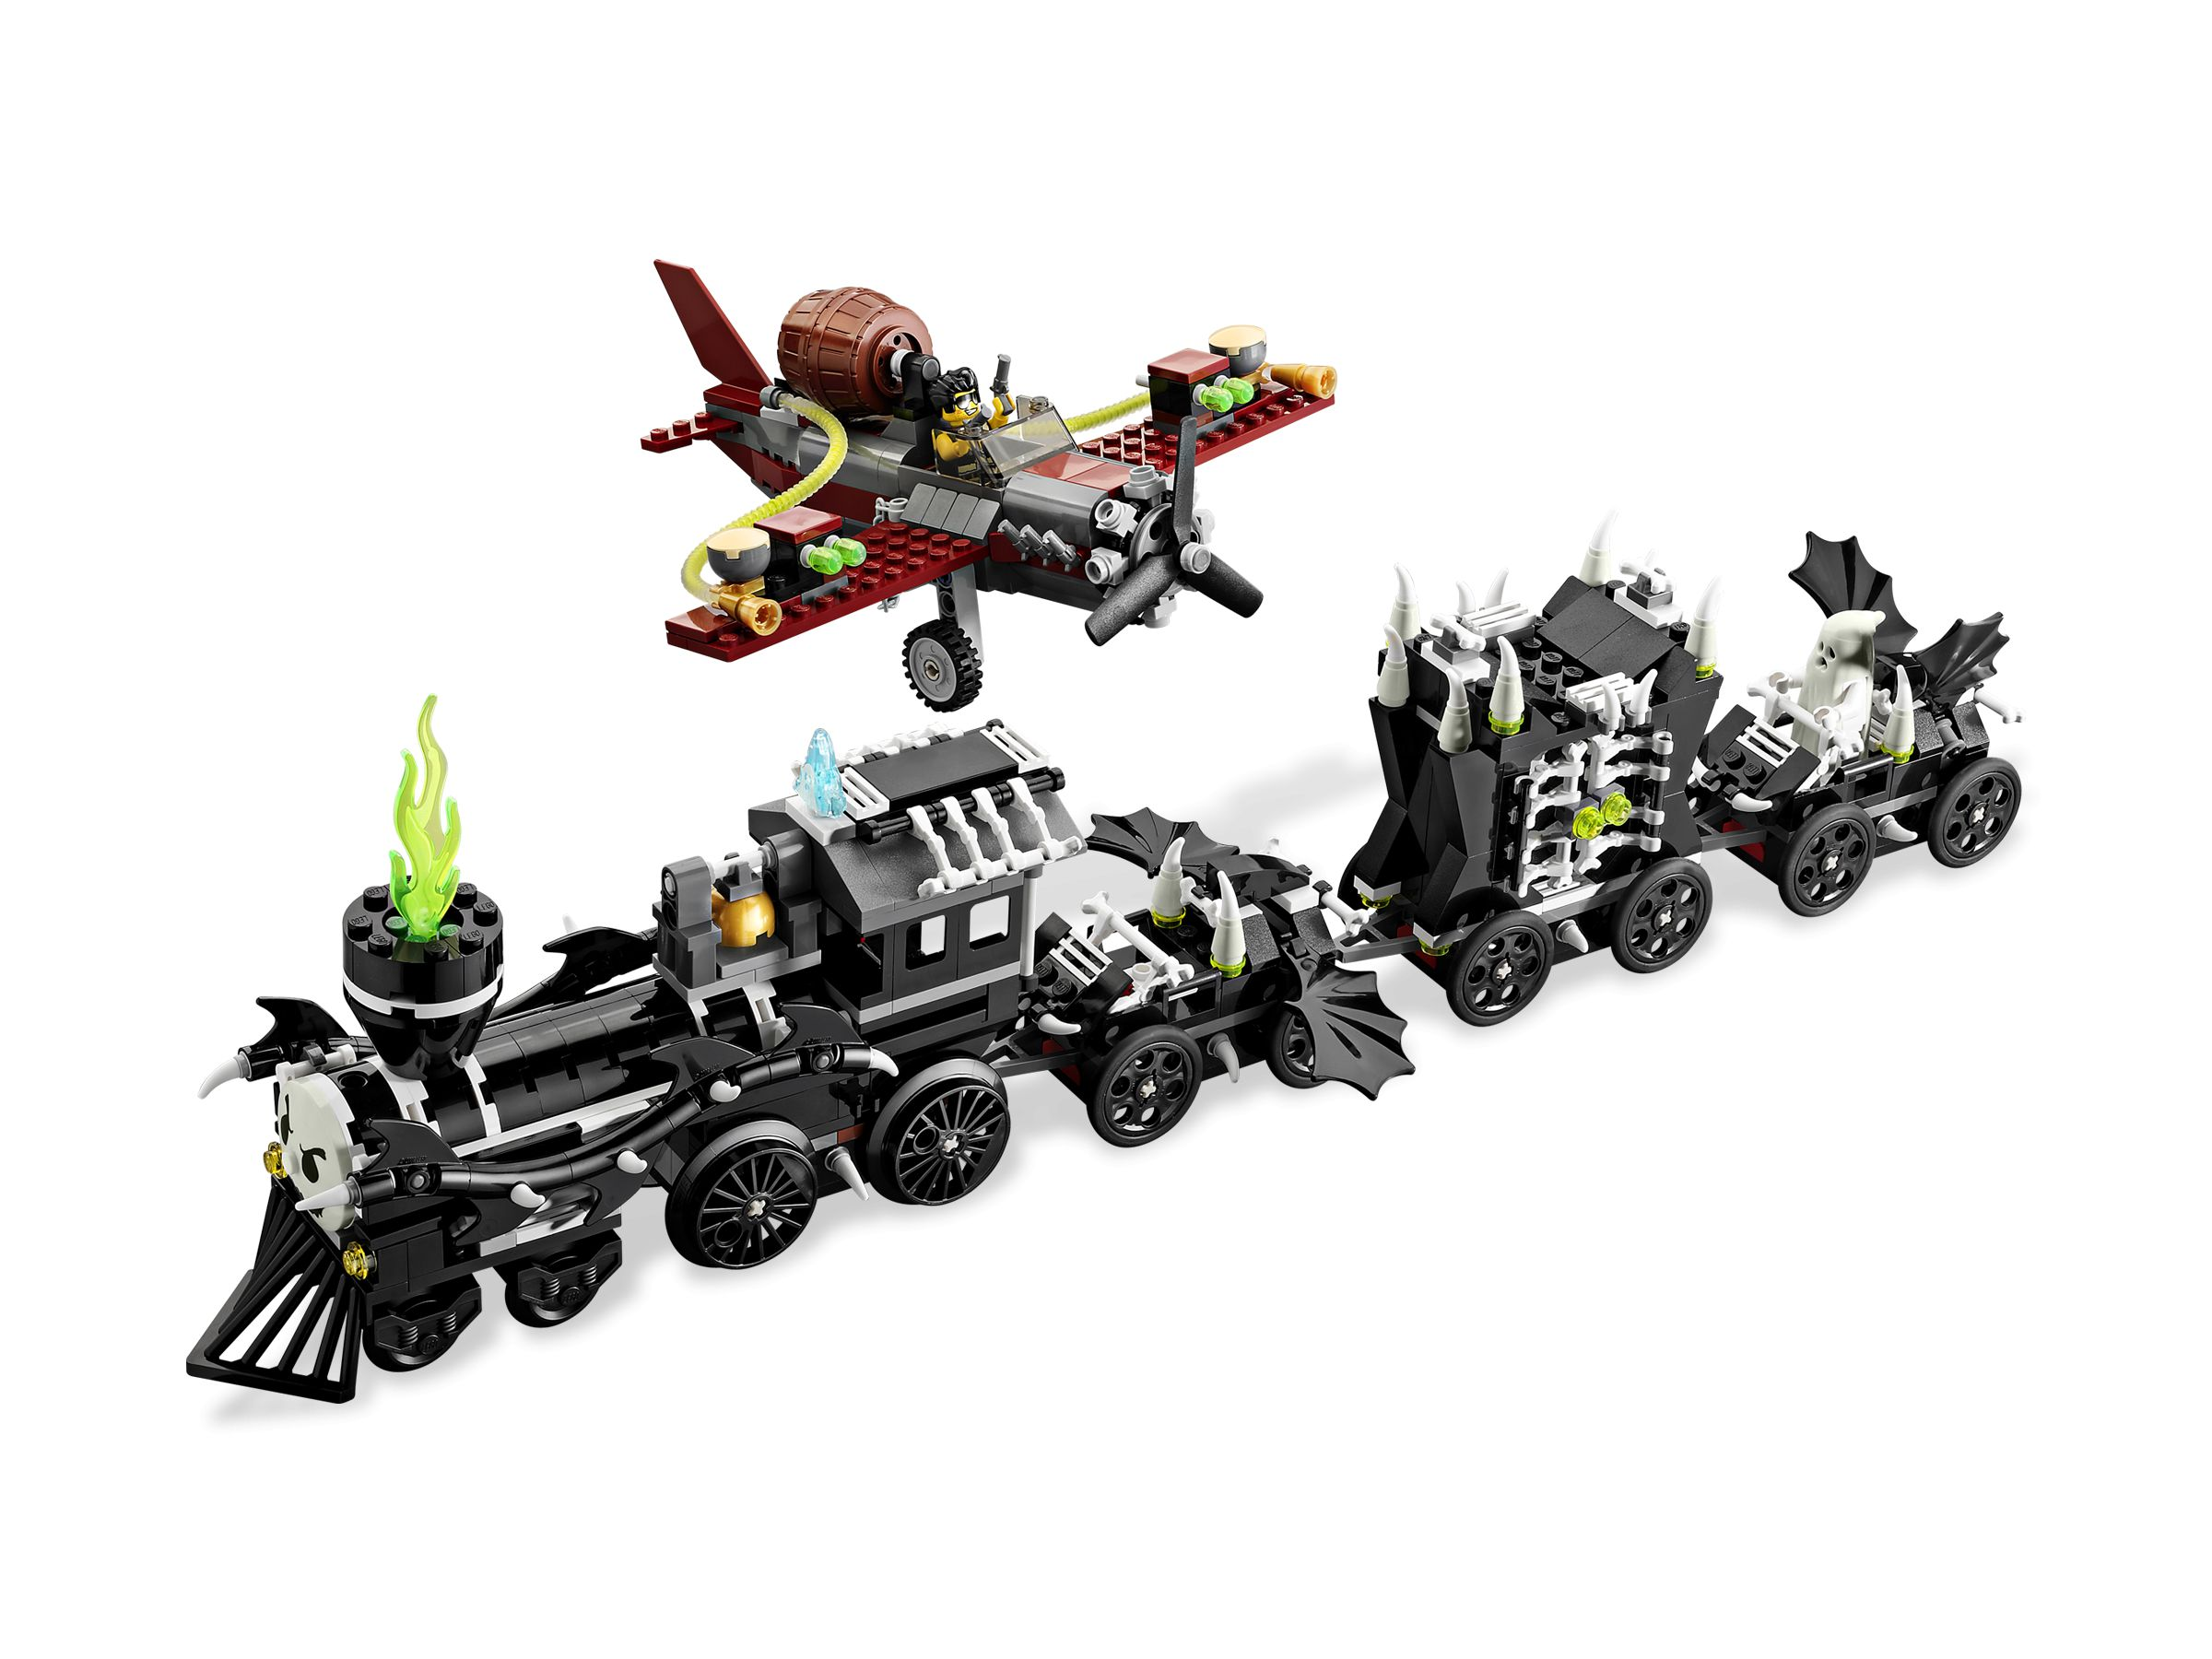 LEGO Monster Fighters 9467 The Ghost Train LEGO_9467_alt4.jpg